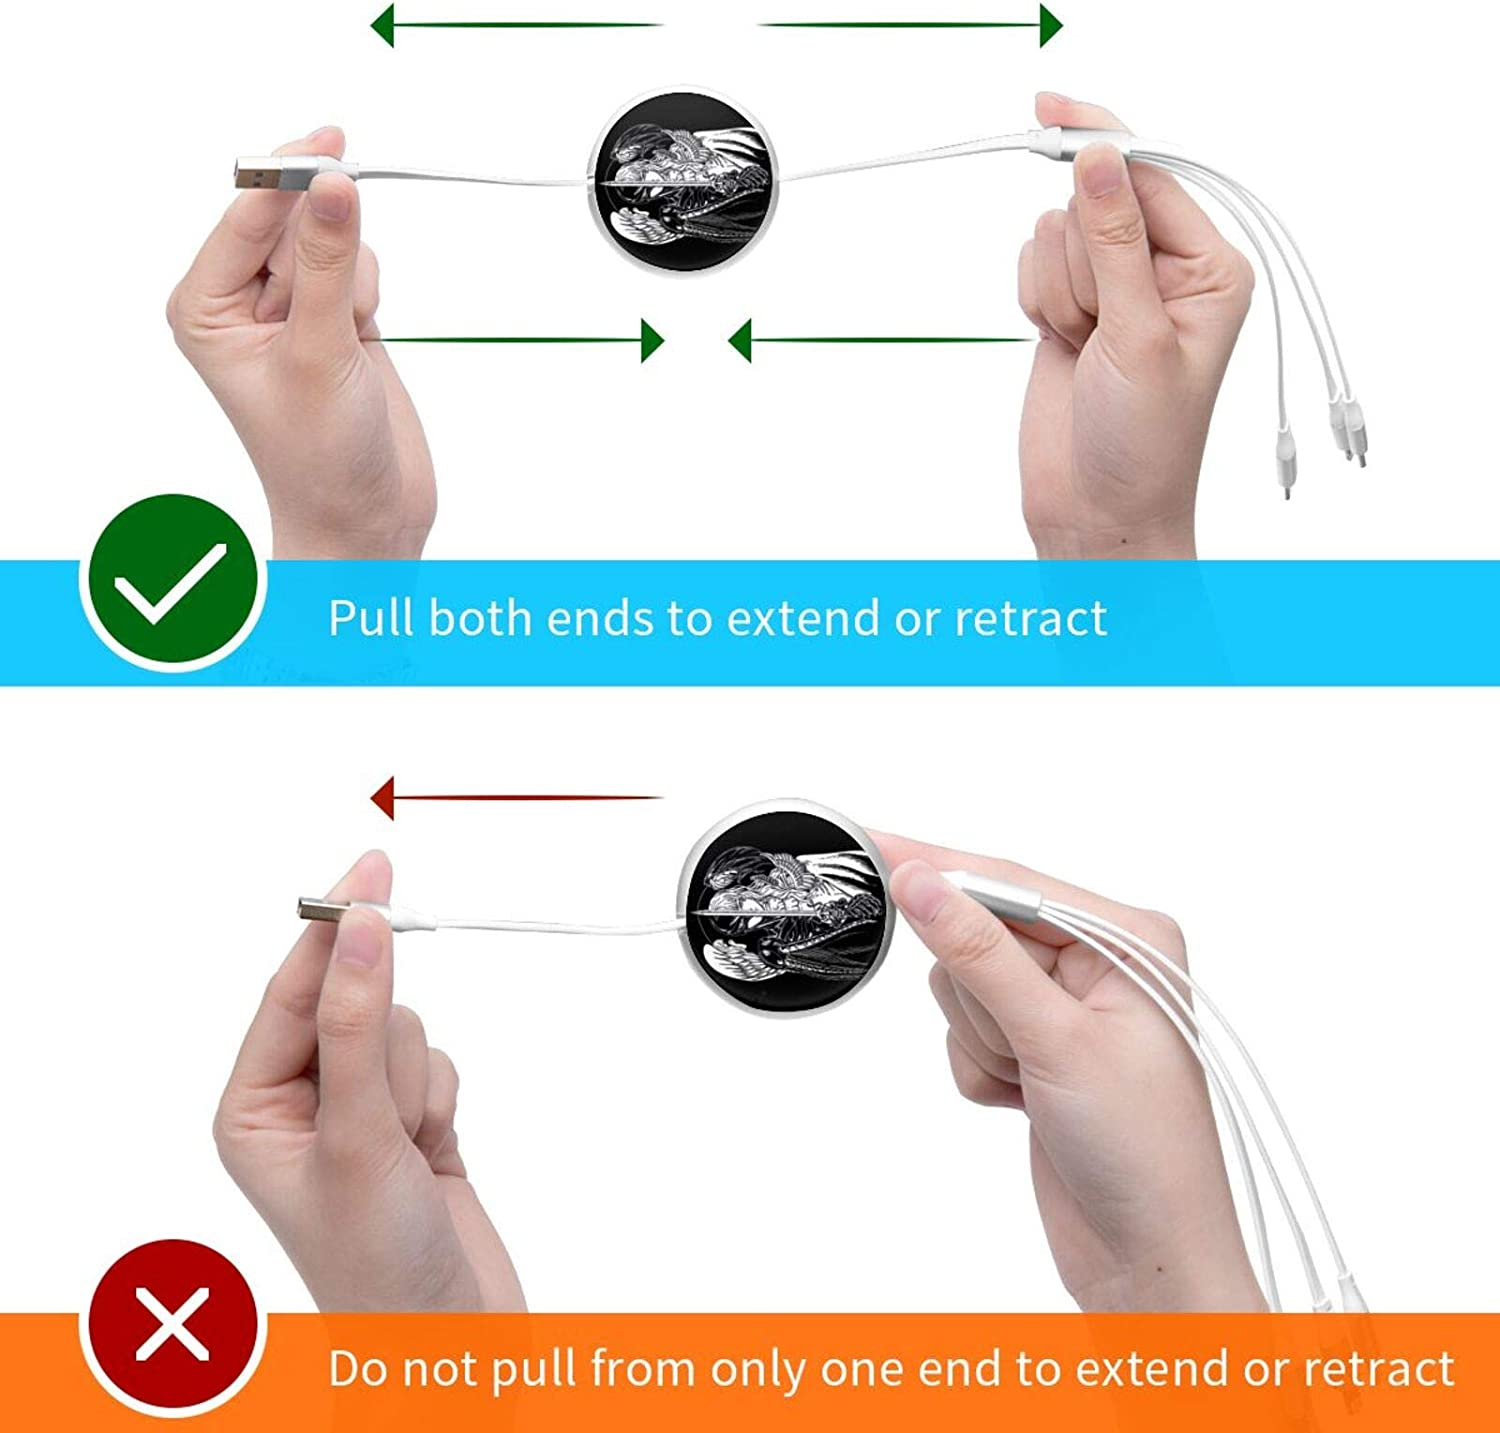 Anime Berserk 3 in 1 Retractable Multiple Charging Cable 3.0a Fast Charger Cord with Phone//Type C//Micro USB Charge Port Adapter Compatible with Cell Phones Tablets and More